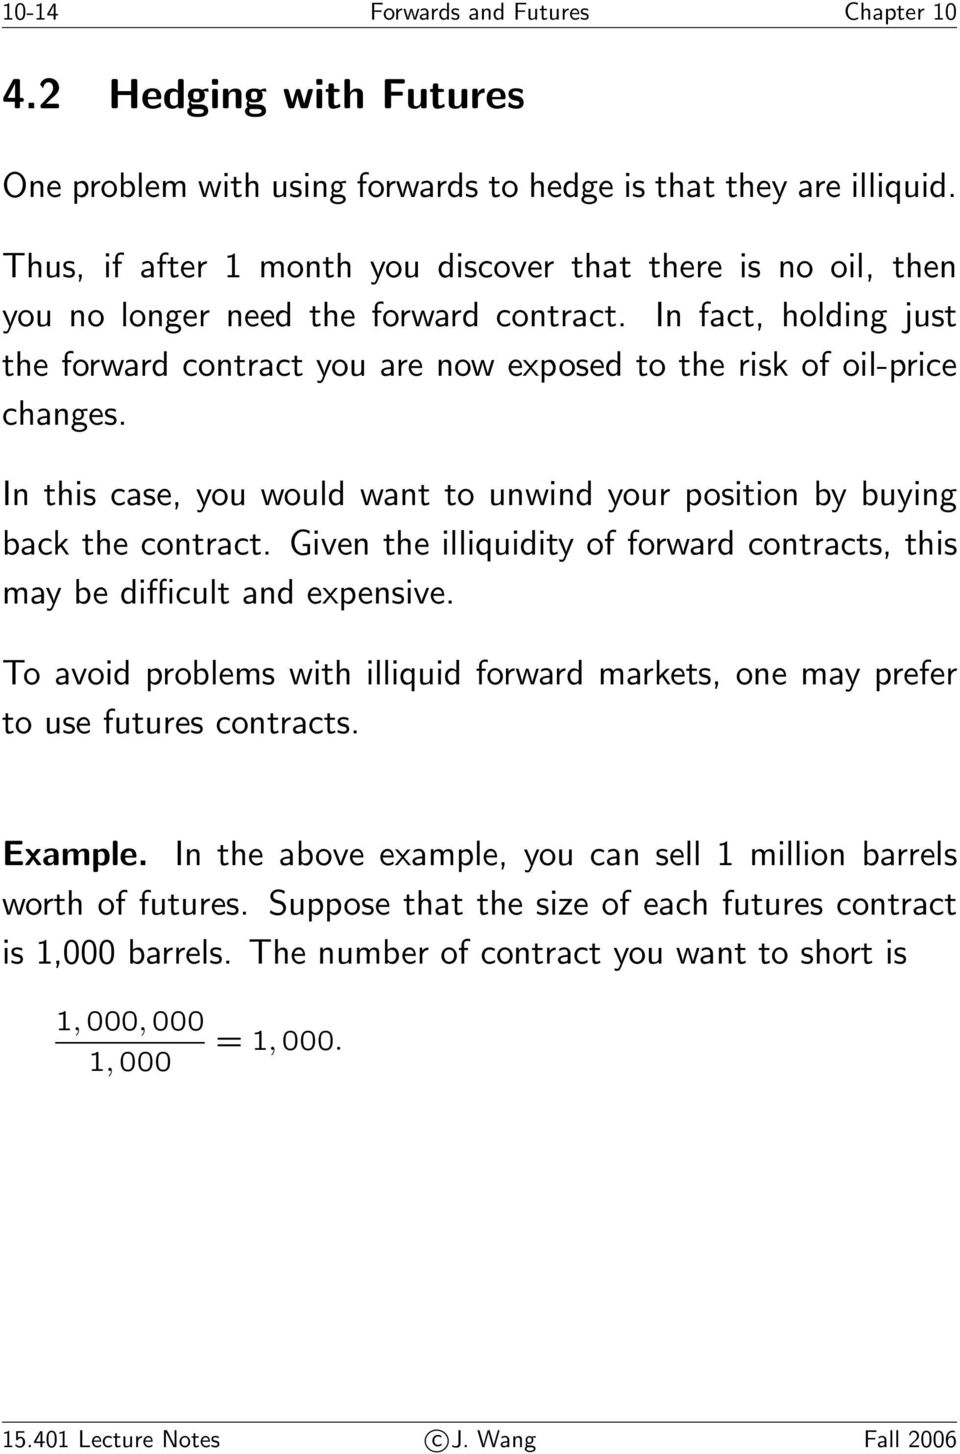 In this case, you would want to unwind your position by buying back the contract. Given the illiquidity of forward contracts, this may be difficult and expensive.